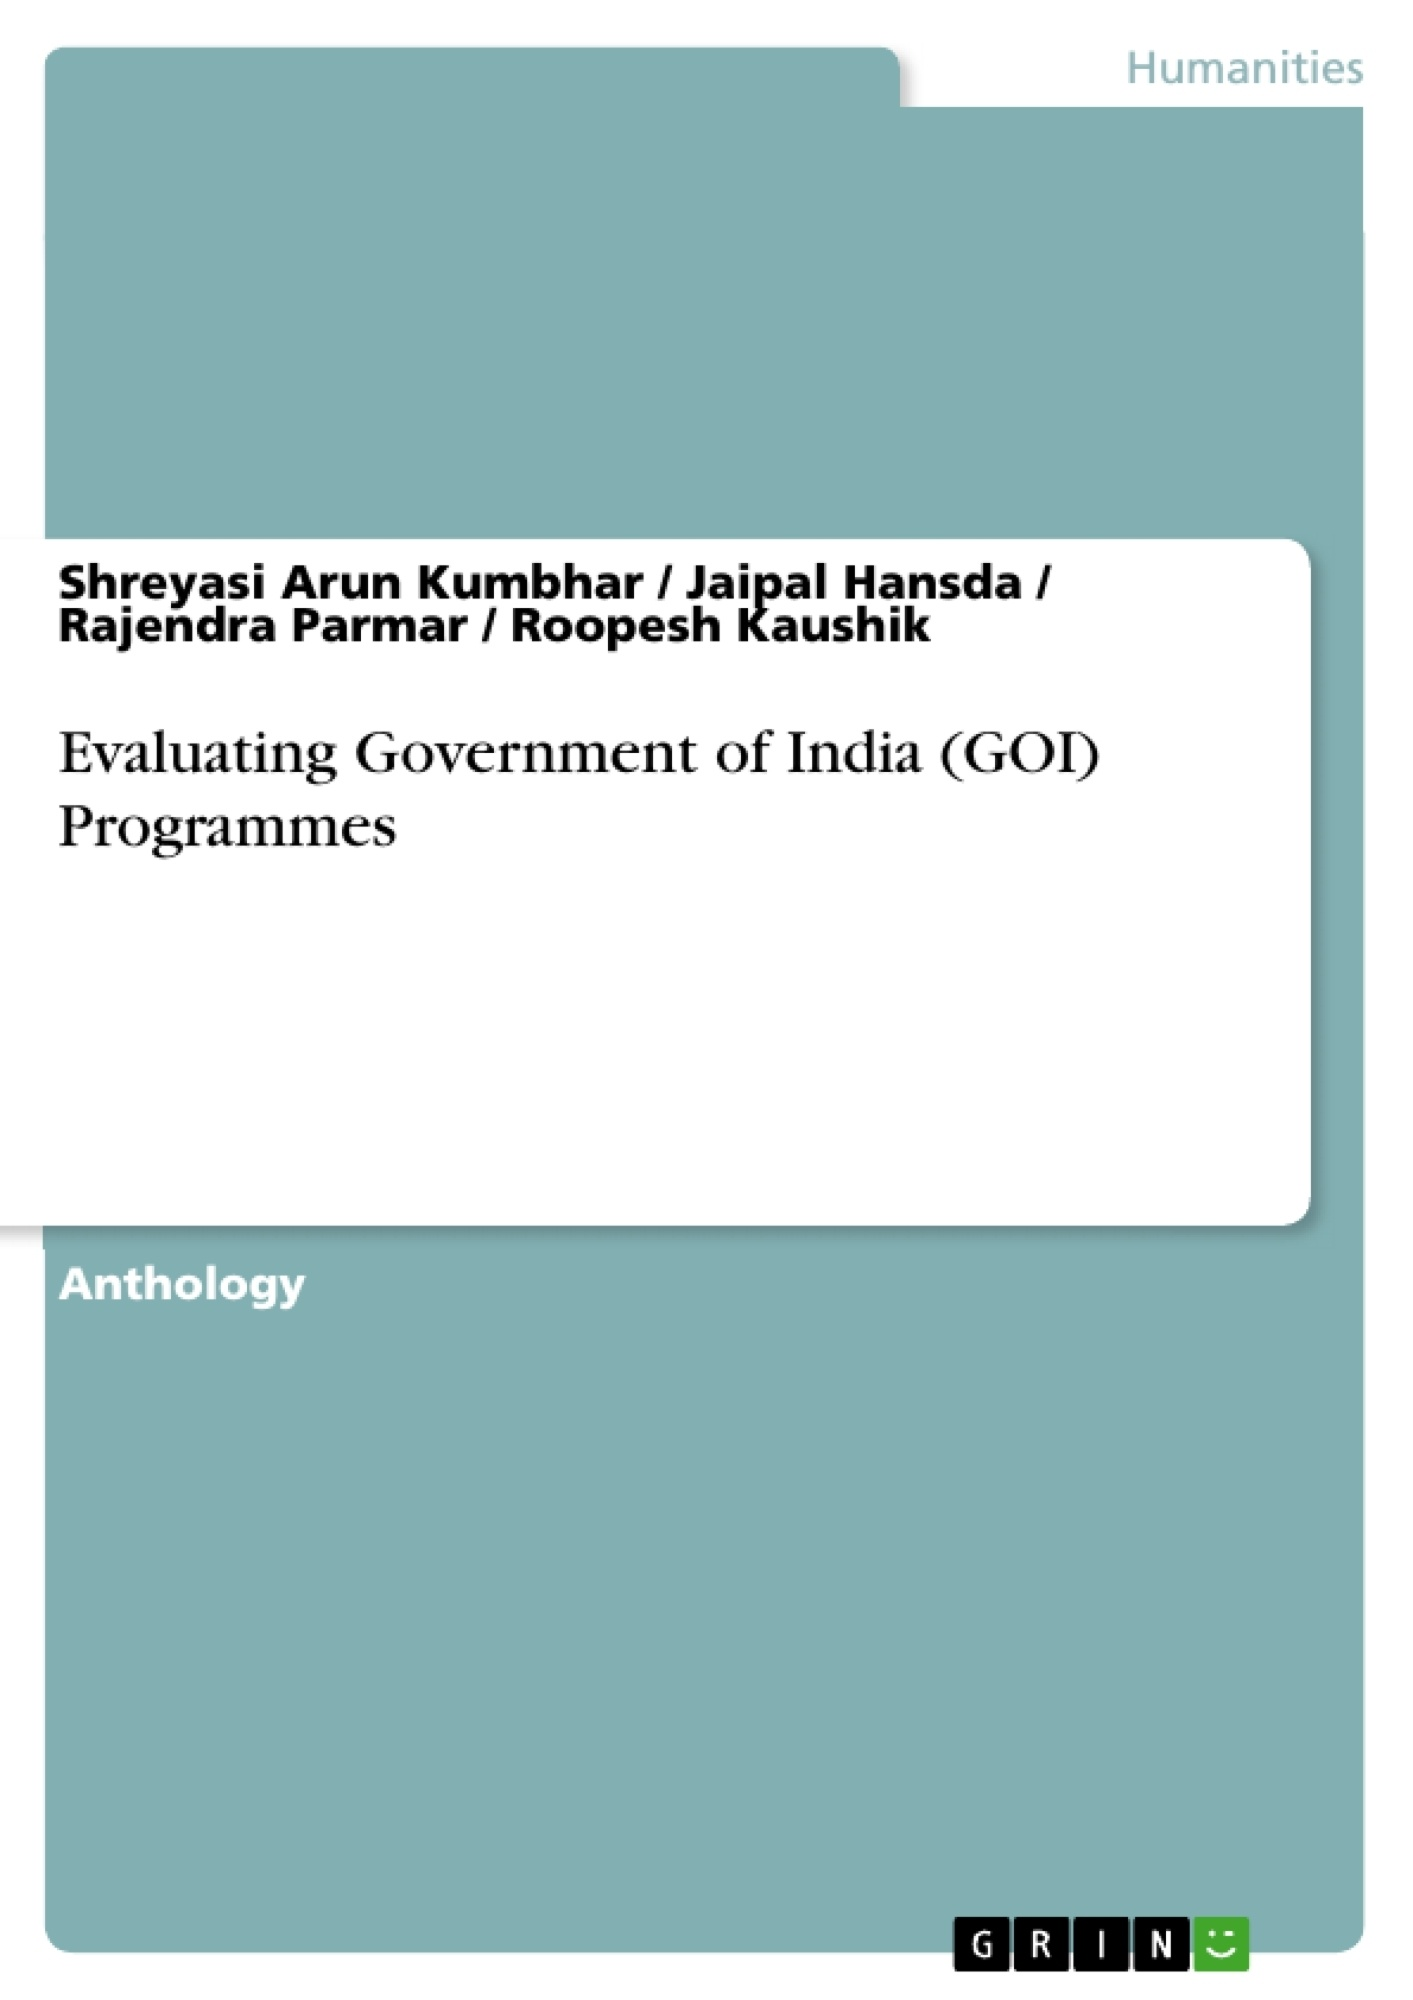 Title: Evaluating Government of India (GOI) Programmes